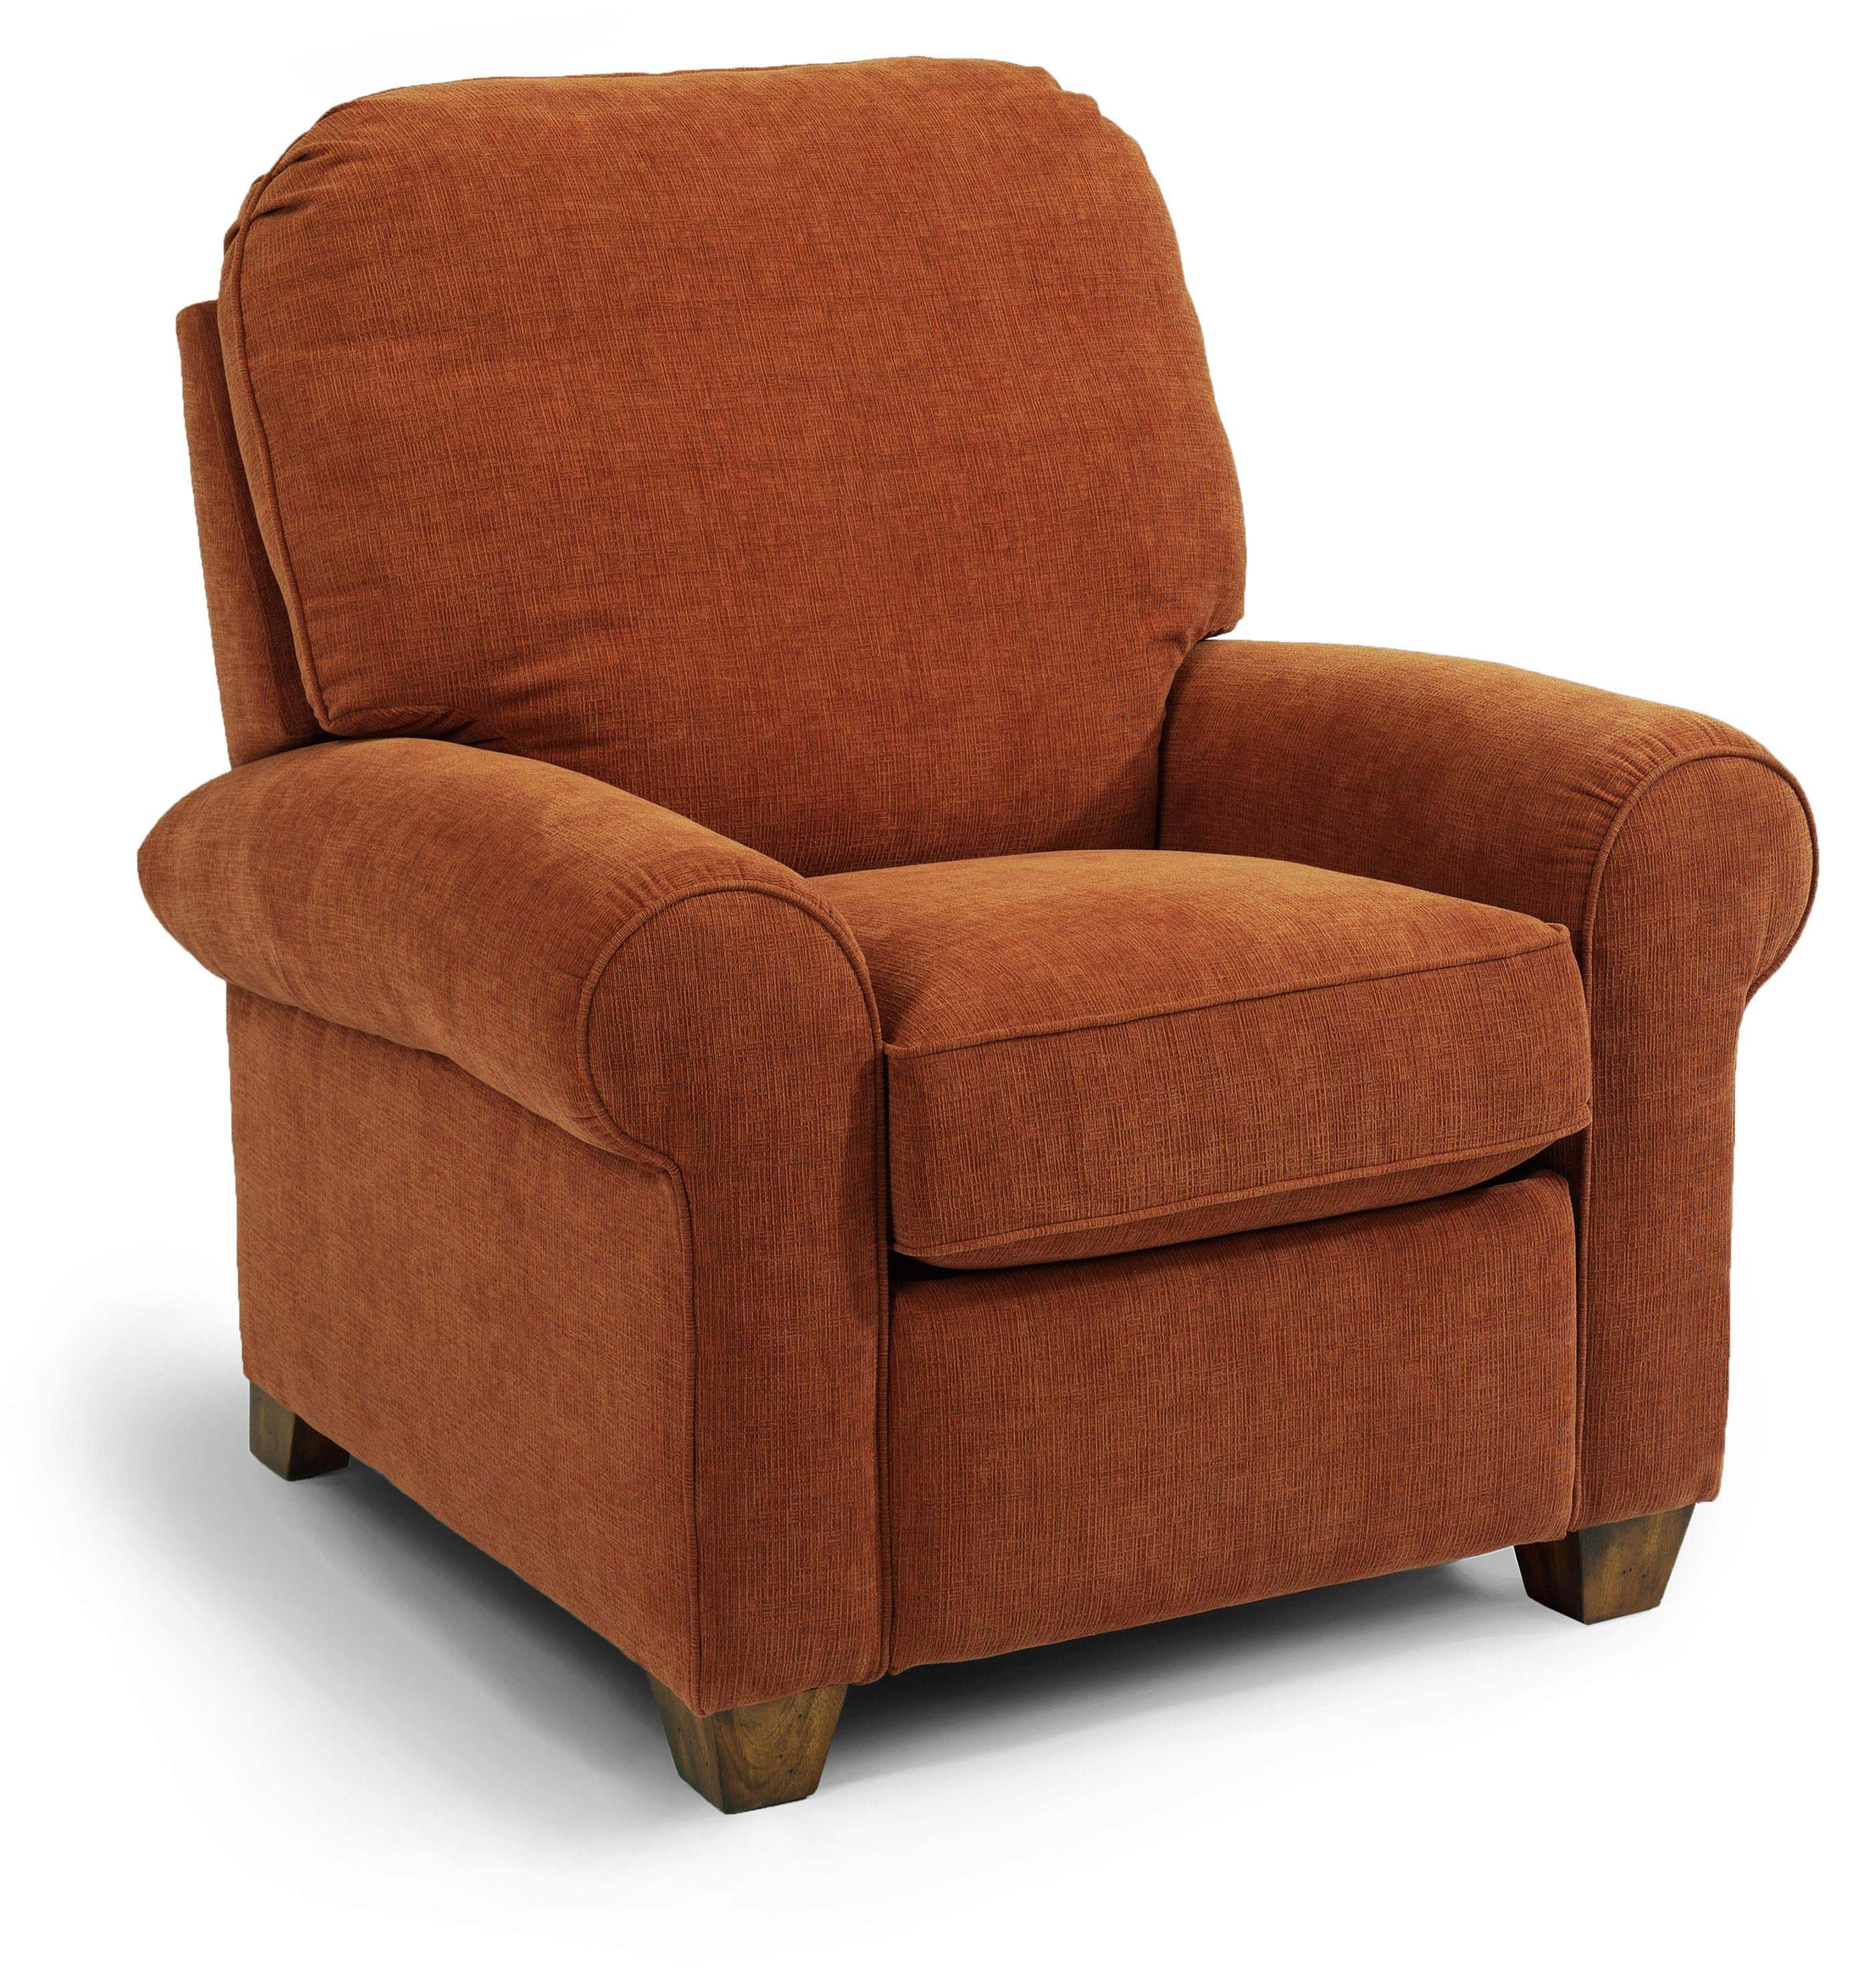 Genial Flexsteel Thornton High Leg Recliner   Item Number: 5535 503